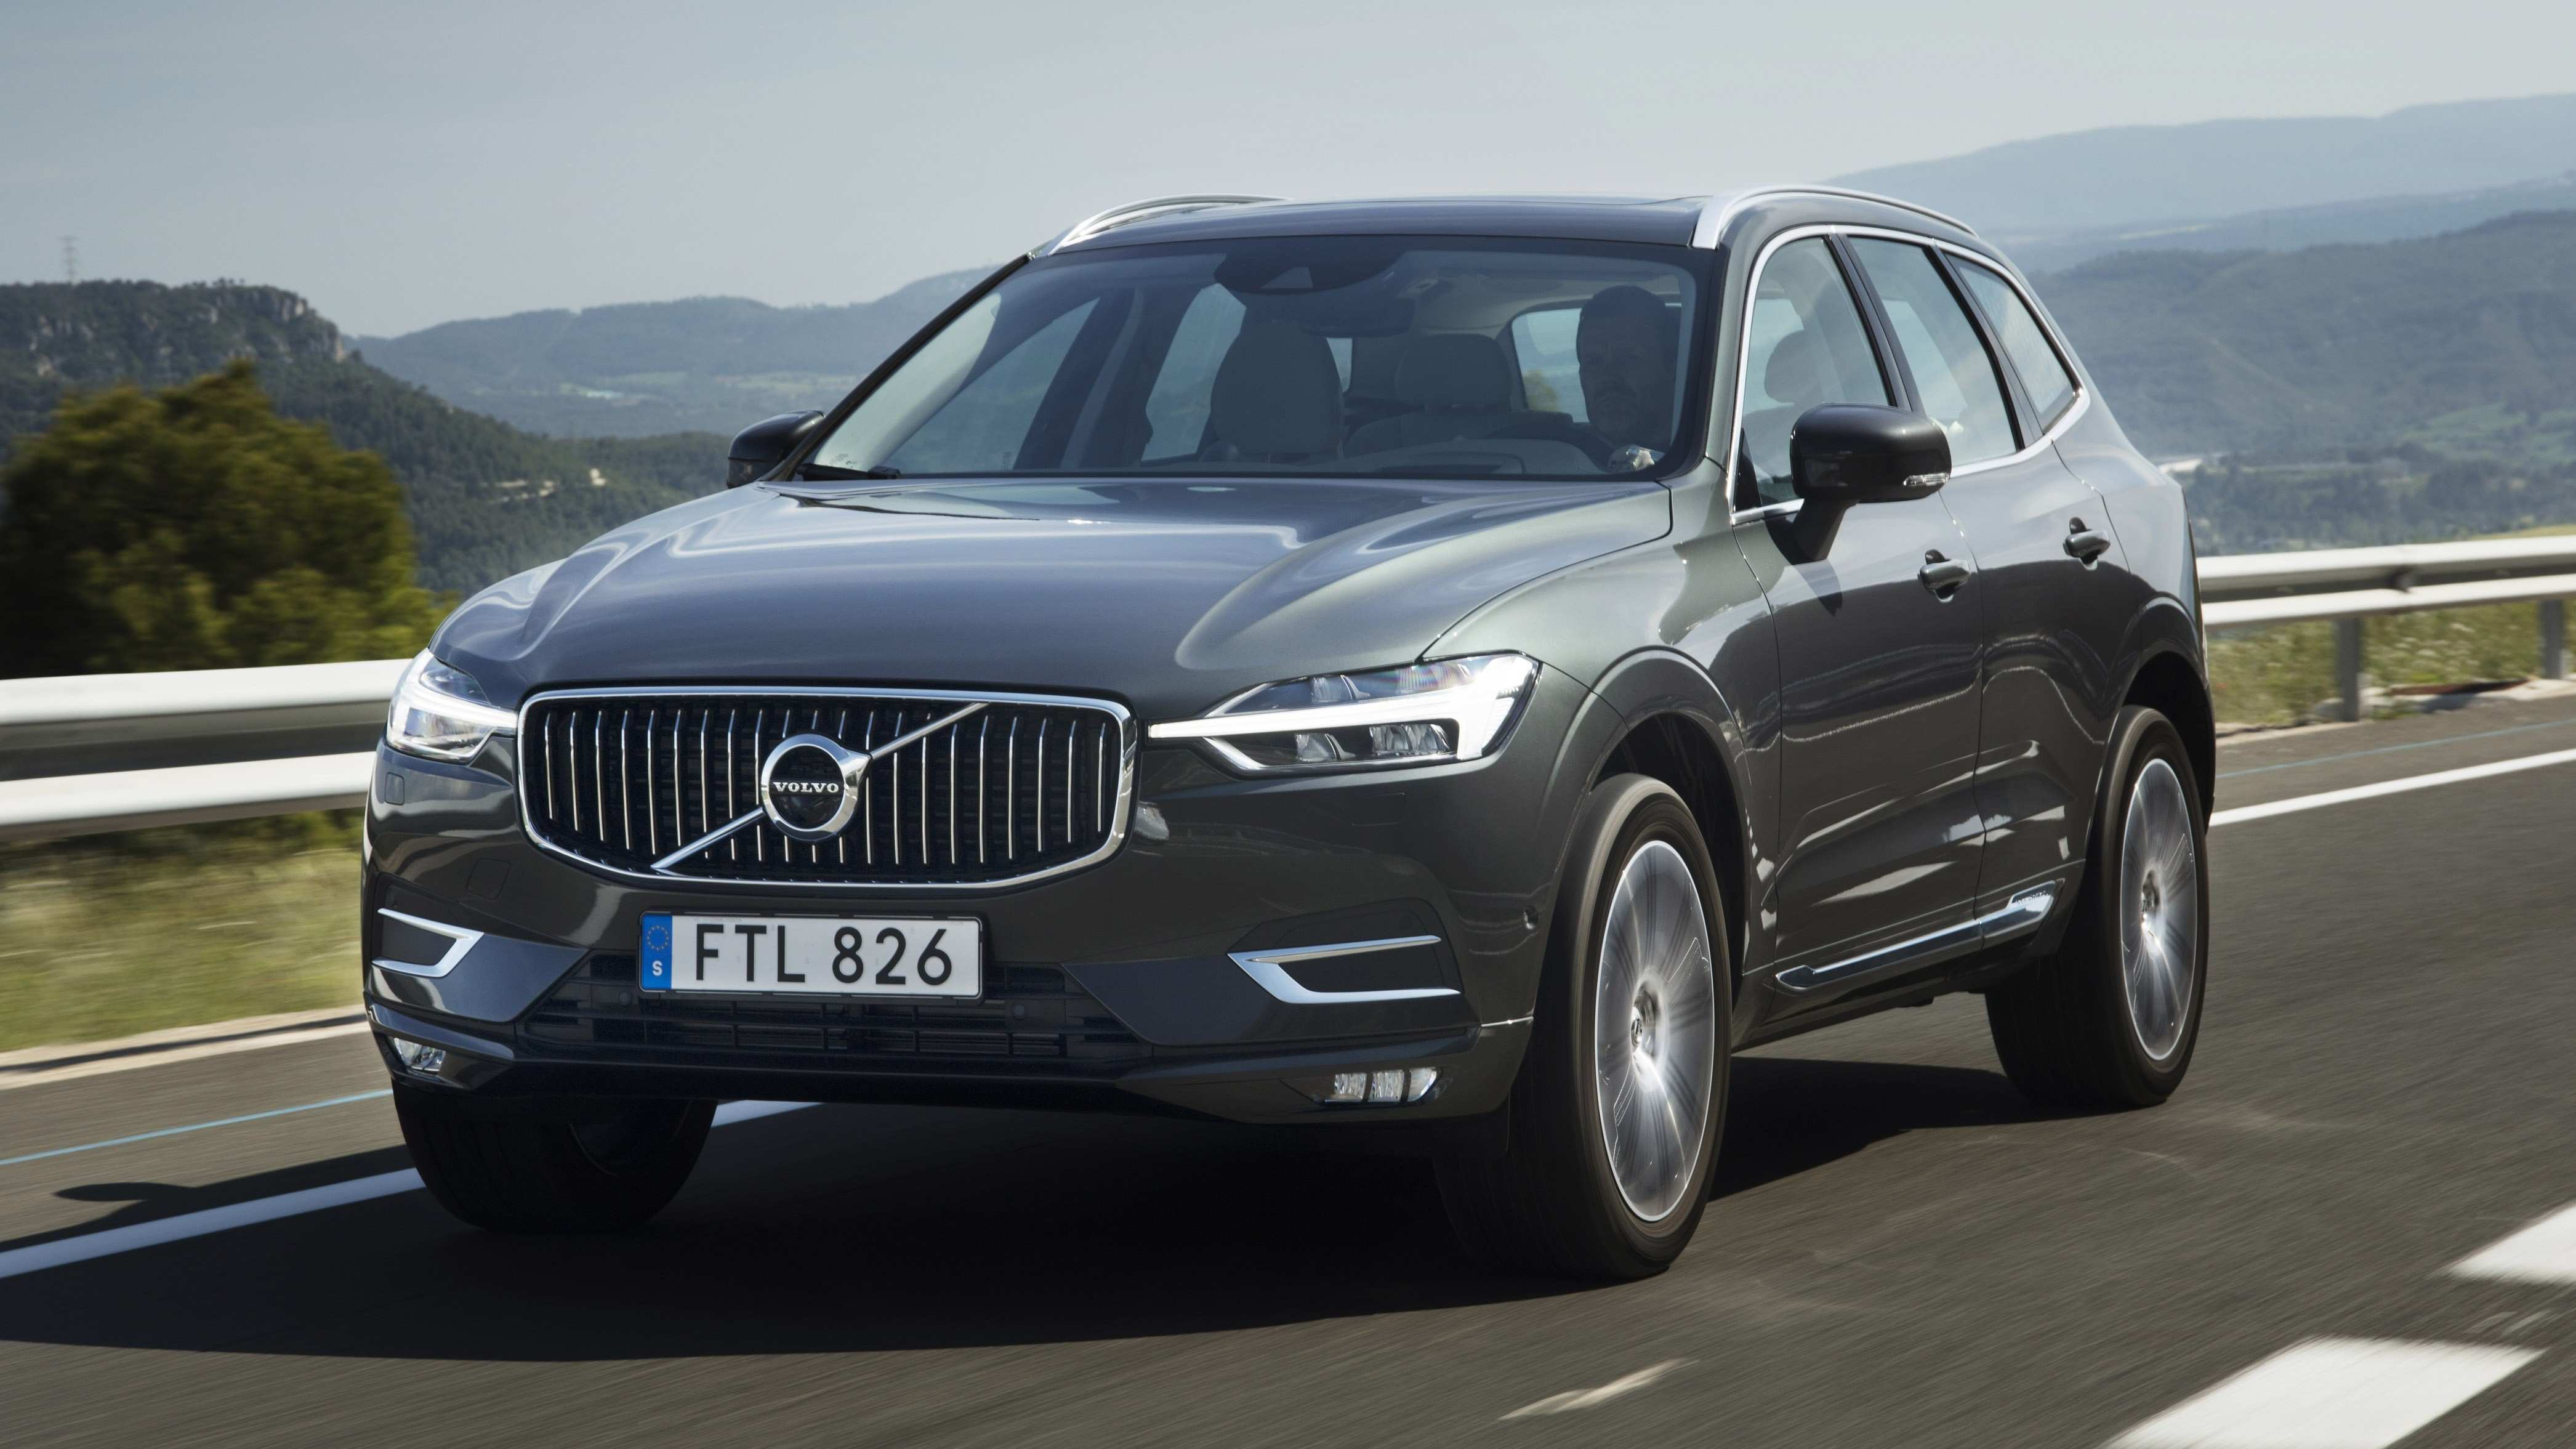 34 Best Review All New Volvo Xc90 2020 Photos with All New Volvo Xc90 2020